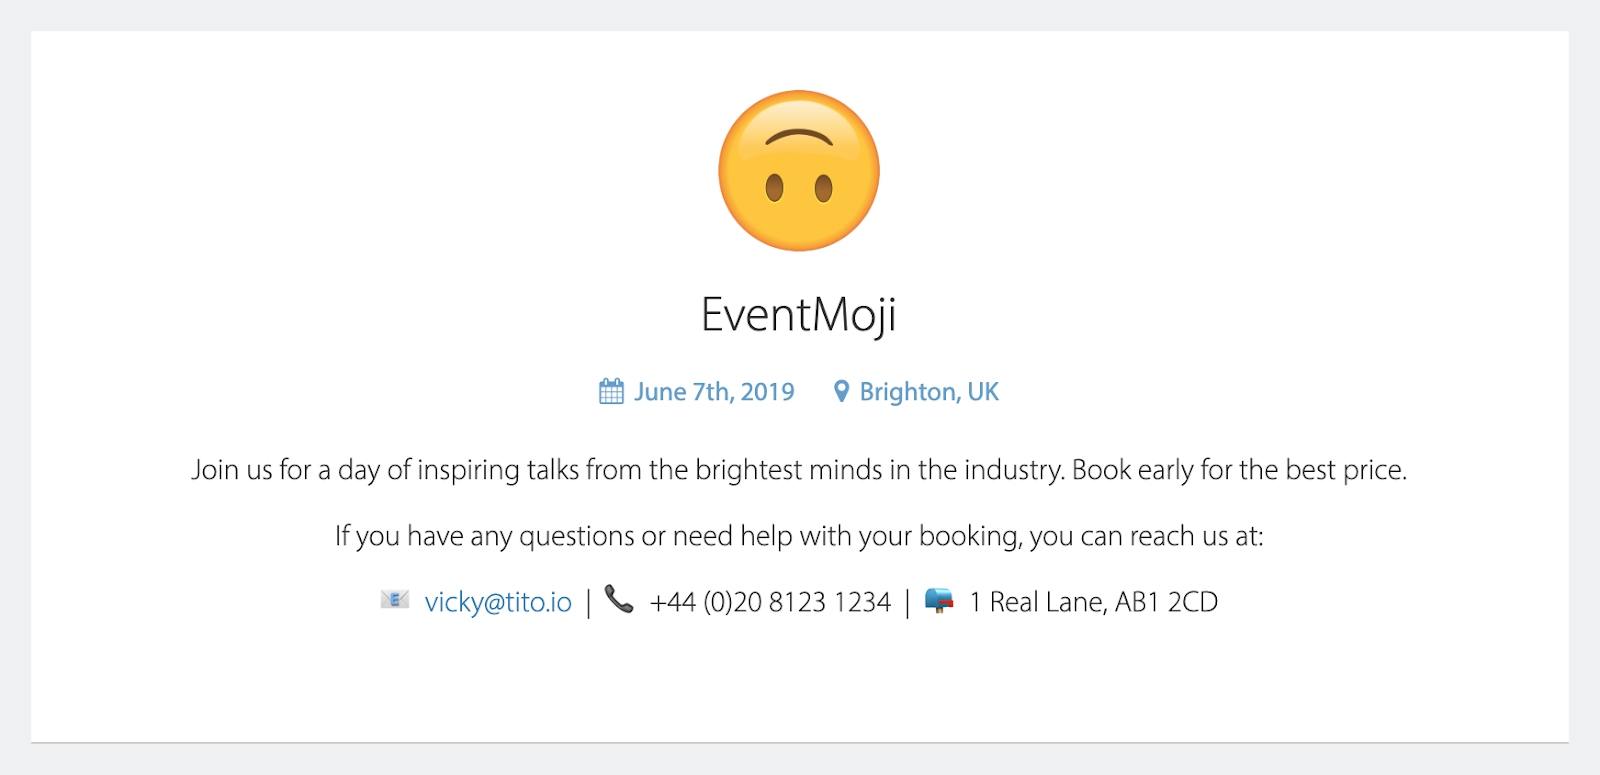 Email, phone number and postal address with corresponding emoji